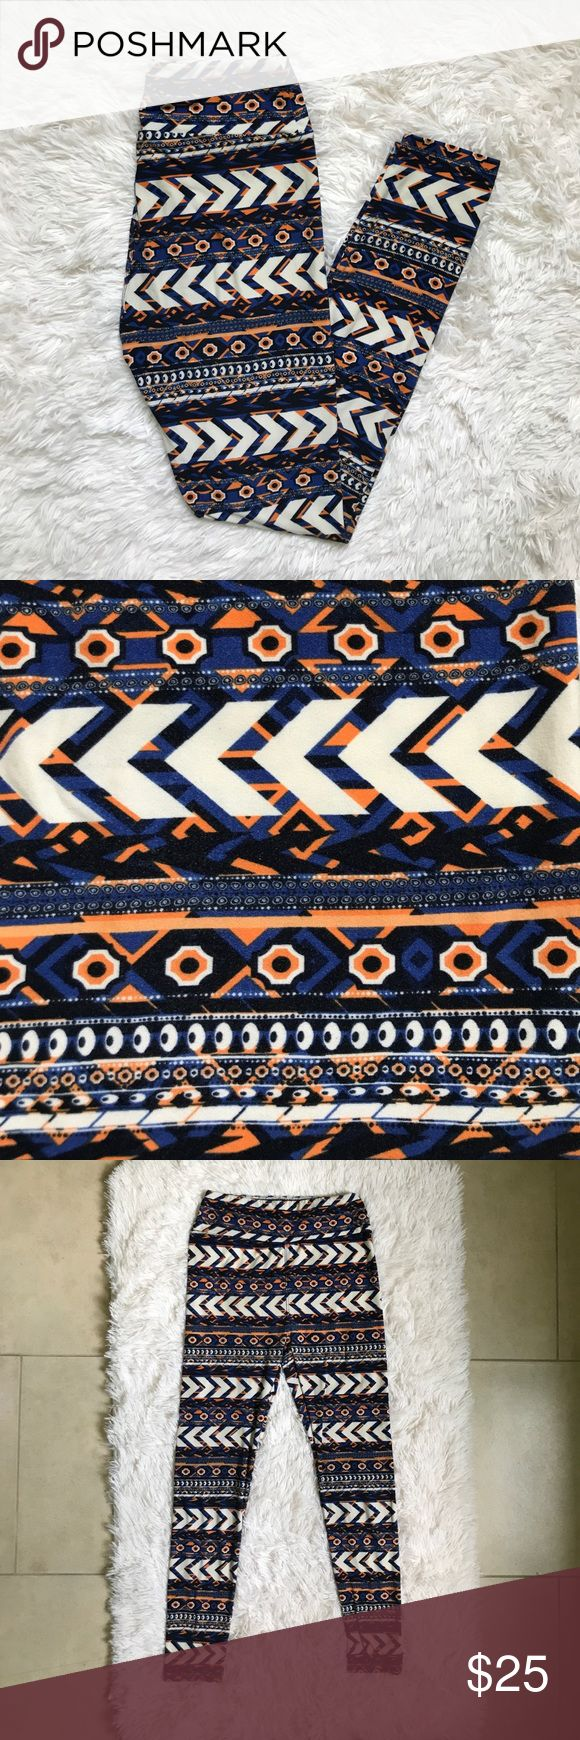 Lularoe tribal print leggings These Orange and blue Lularoe tribal print leggings are super soft! They come in one size. LuLaRoe Pants Leggings